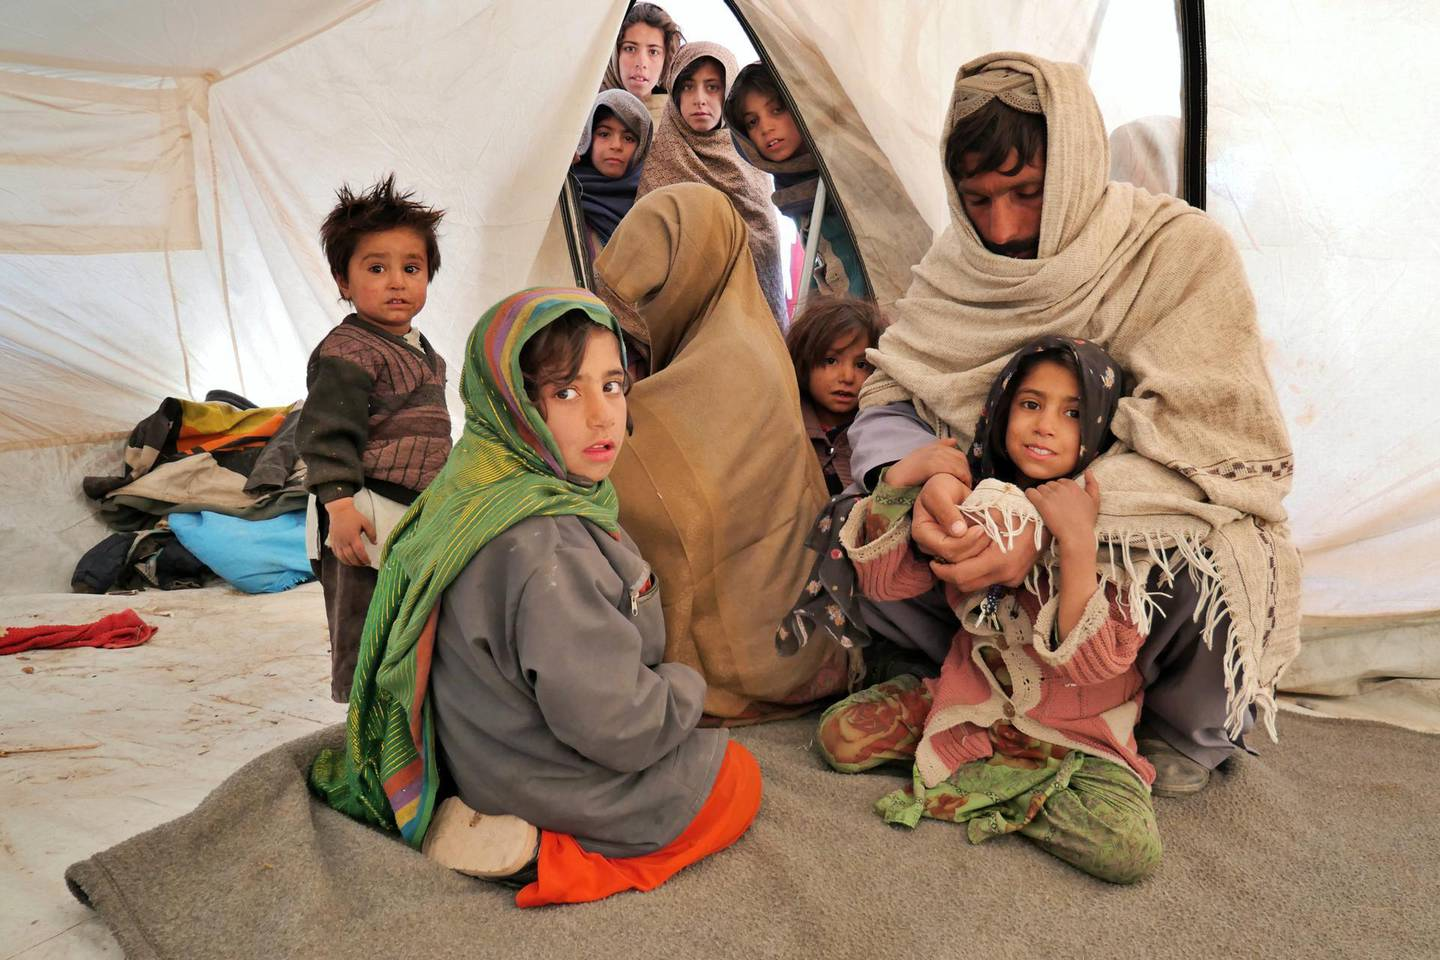 Pictured: Najibullah and his wife Khatima, who remains covered, sit in the tent that is now where they call home with their children. Other children pop their heads inside the tent to see what is going on.  Photo by Charlie Faulkner January 2021